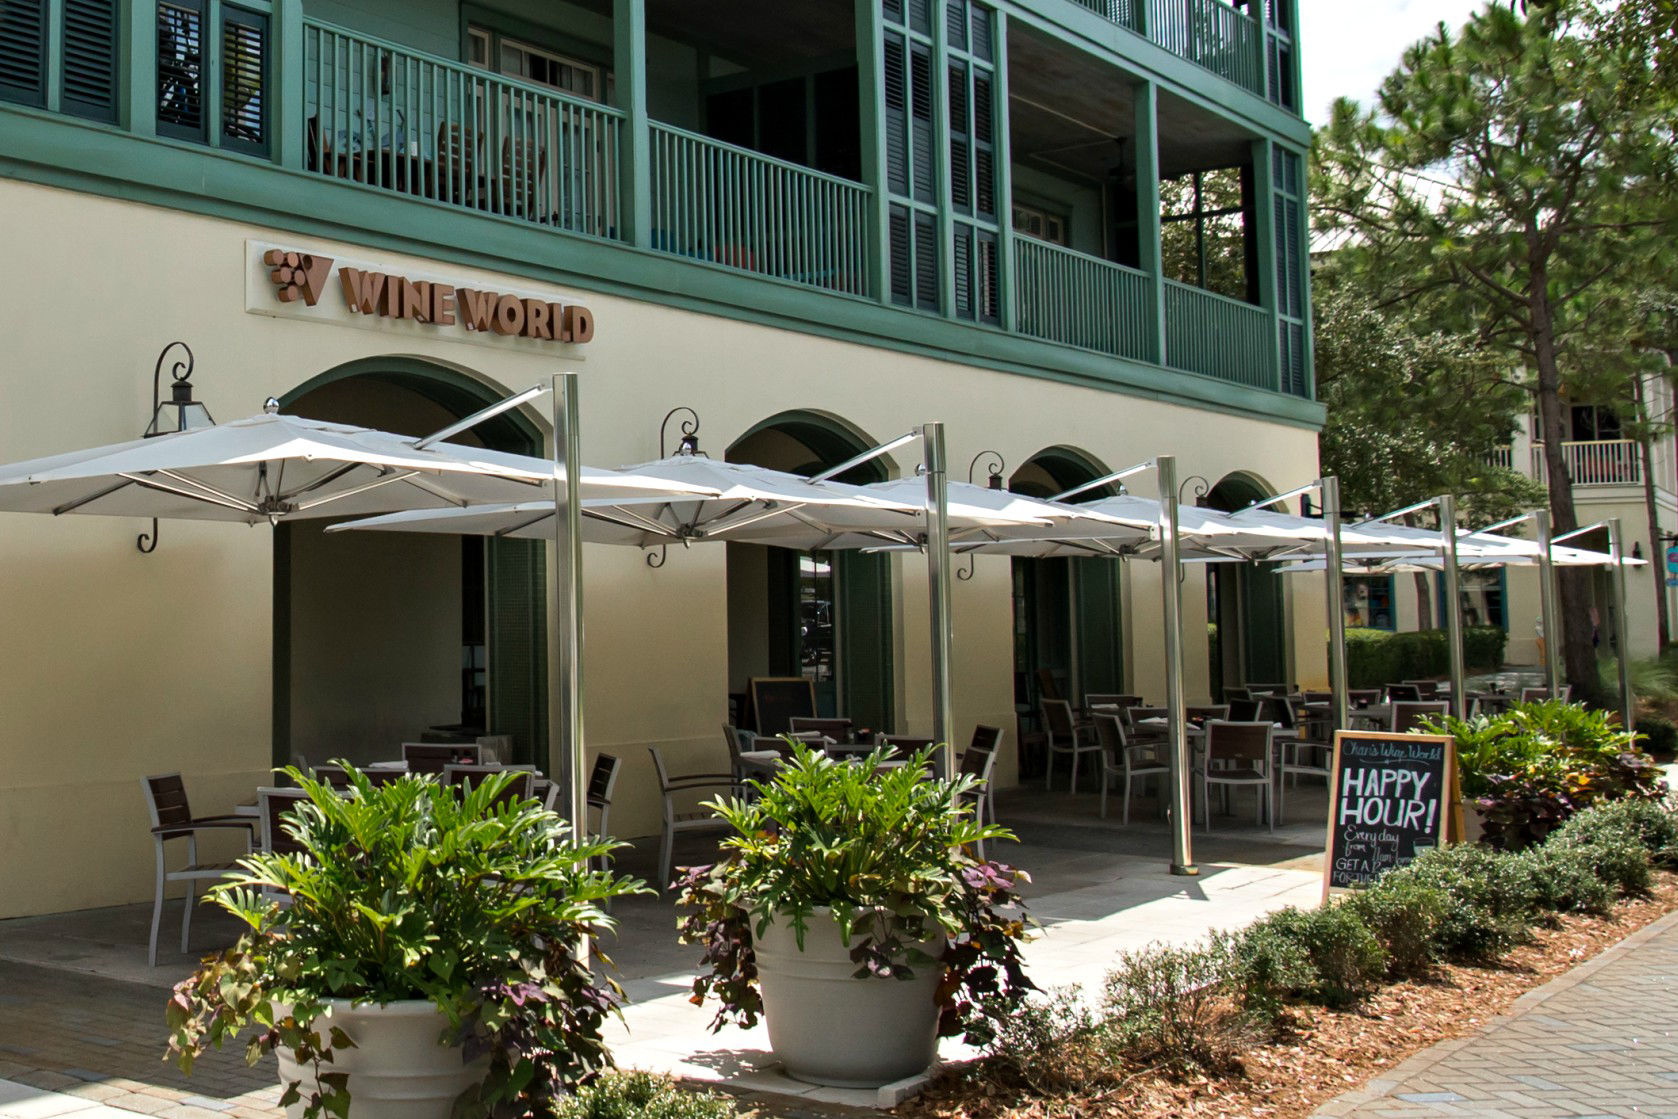 No surprises here: This sophisticated spot in WaterColor's petite town center pours wines of all varieties, with a happy hour special every day and food specials a few nights a week. Stick to sipping on the shaded patio, or order pizza, a cheese...